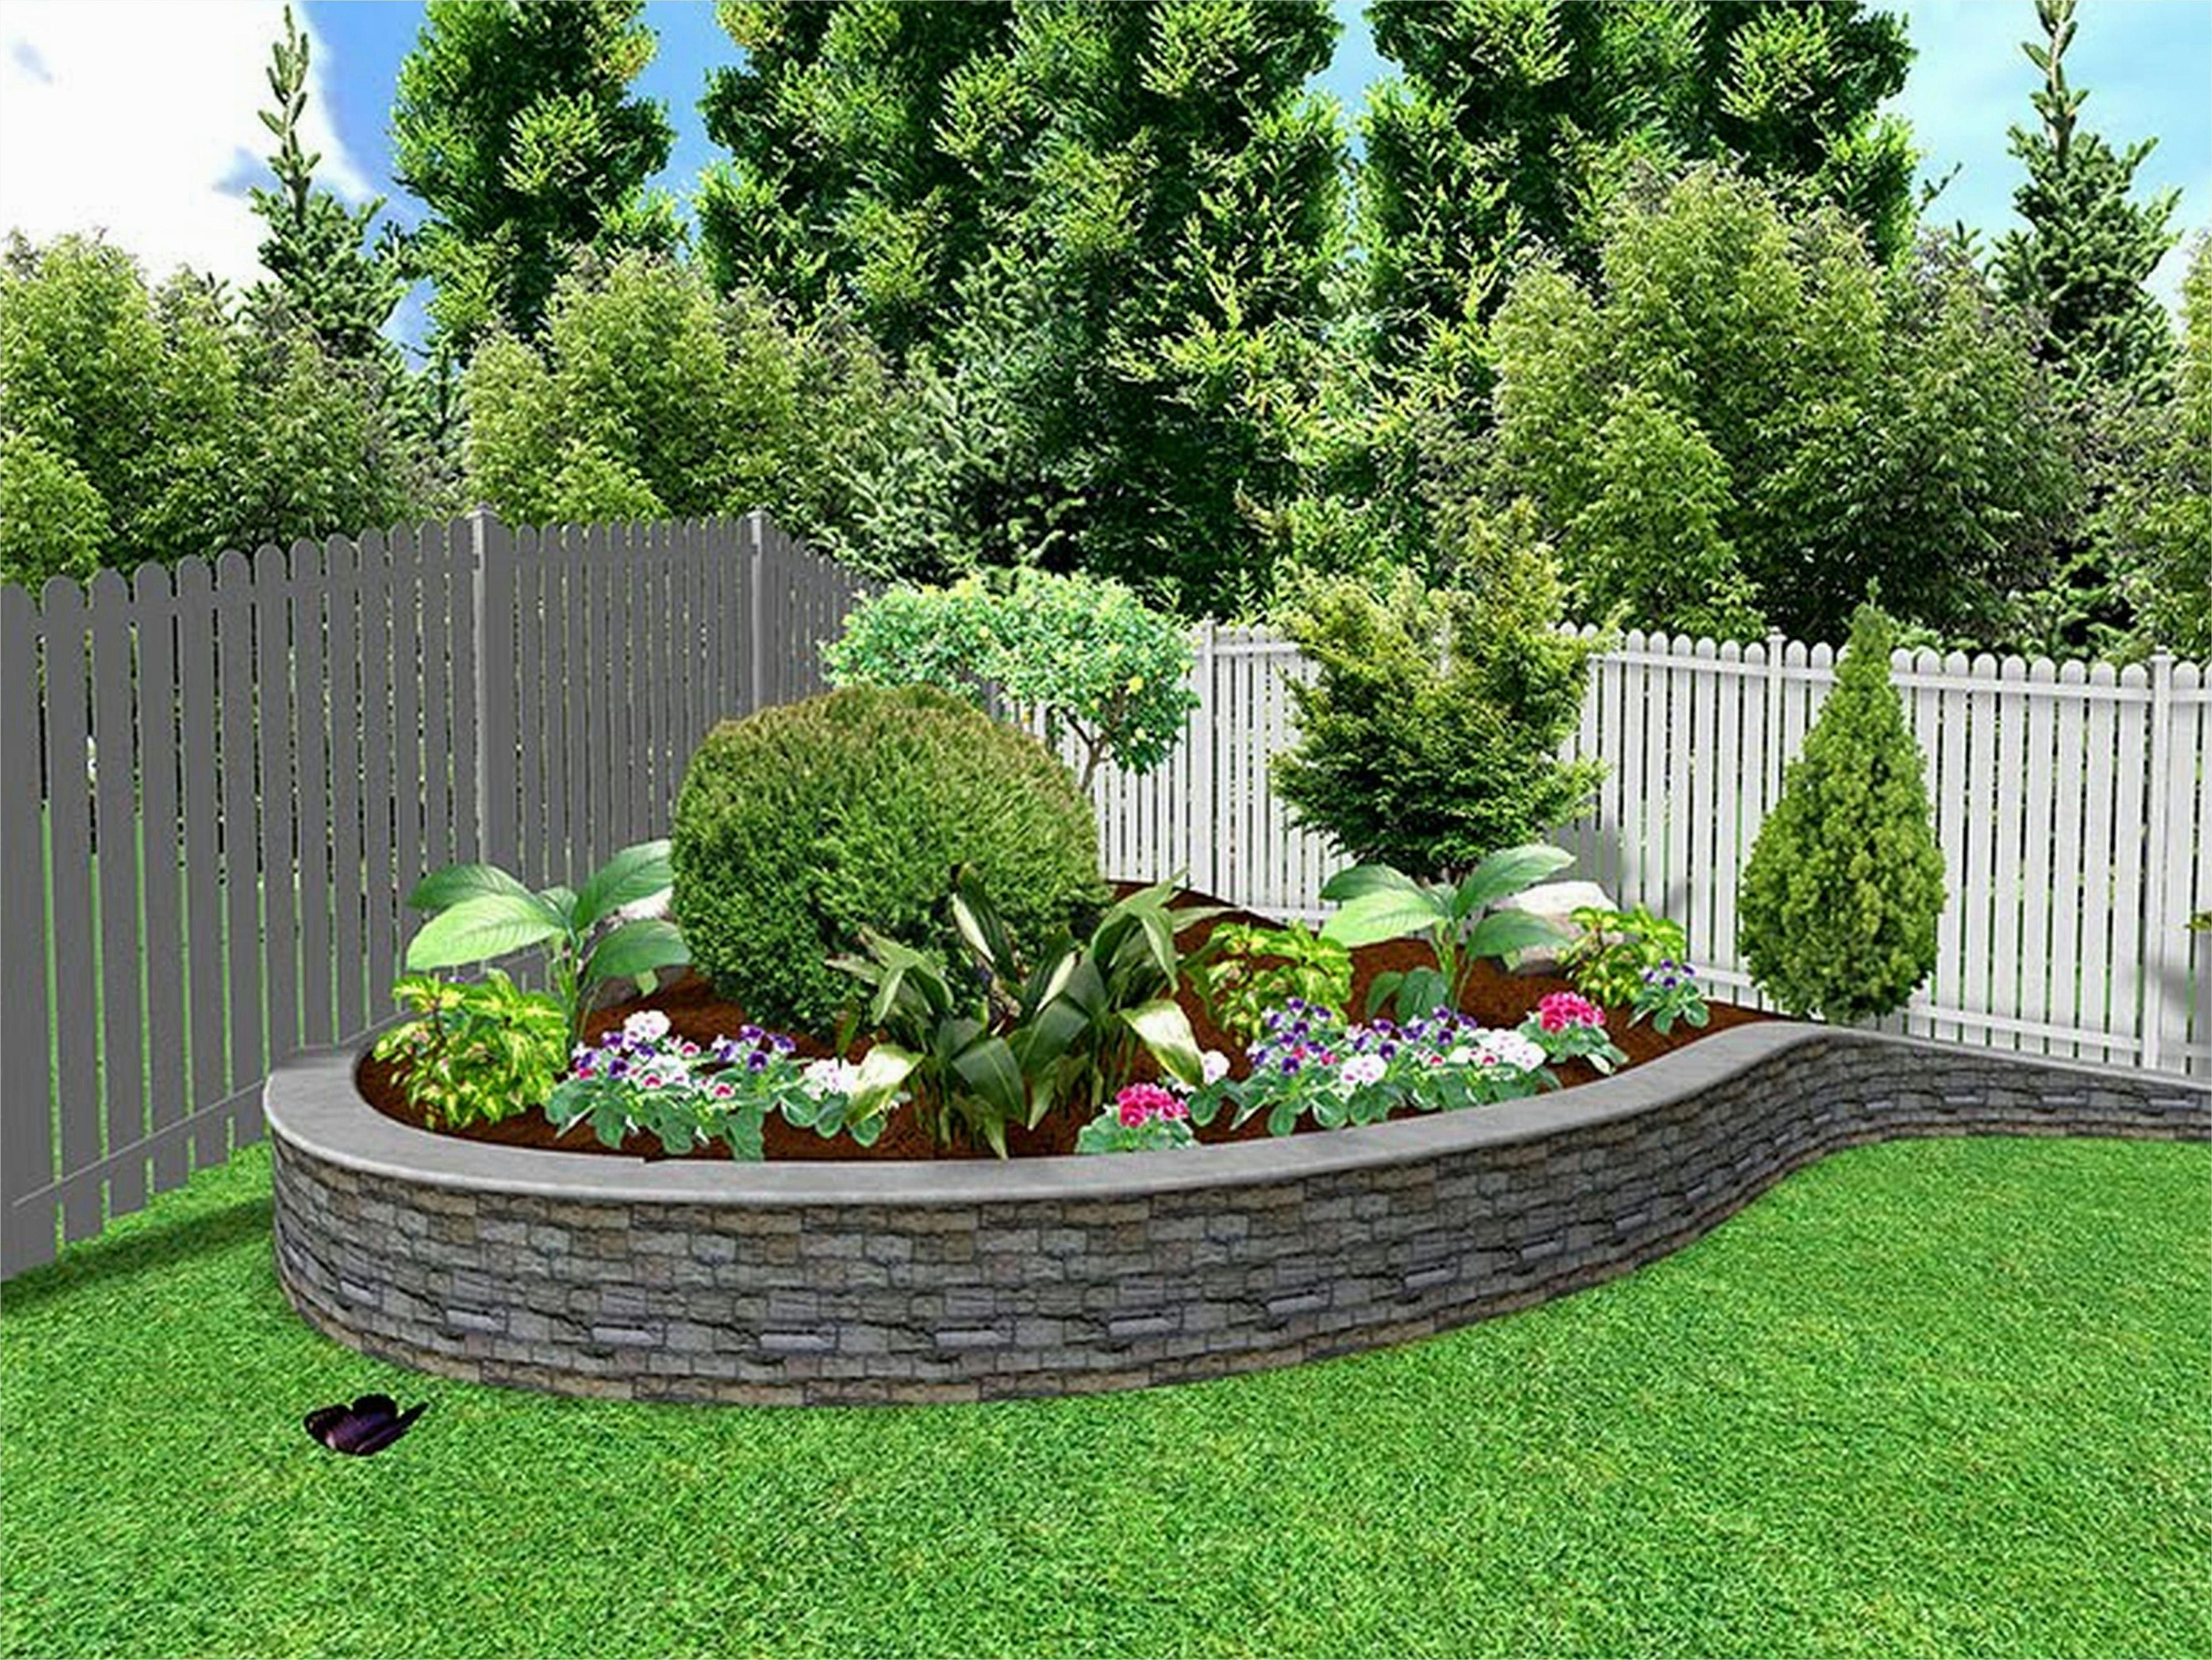 10 outdoor garden ideas on a budget brilliant as well as on gorgeous small backyard landscaping ideas id=21523